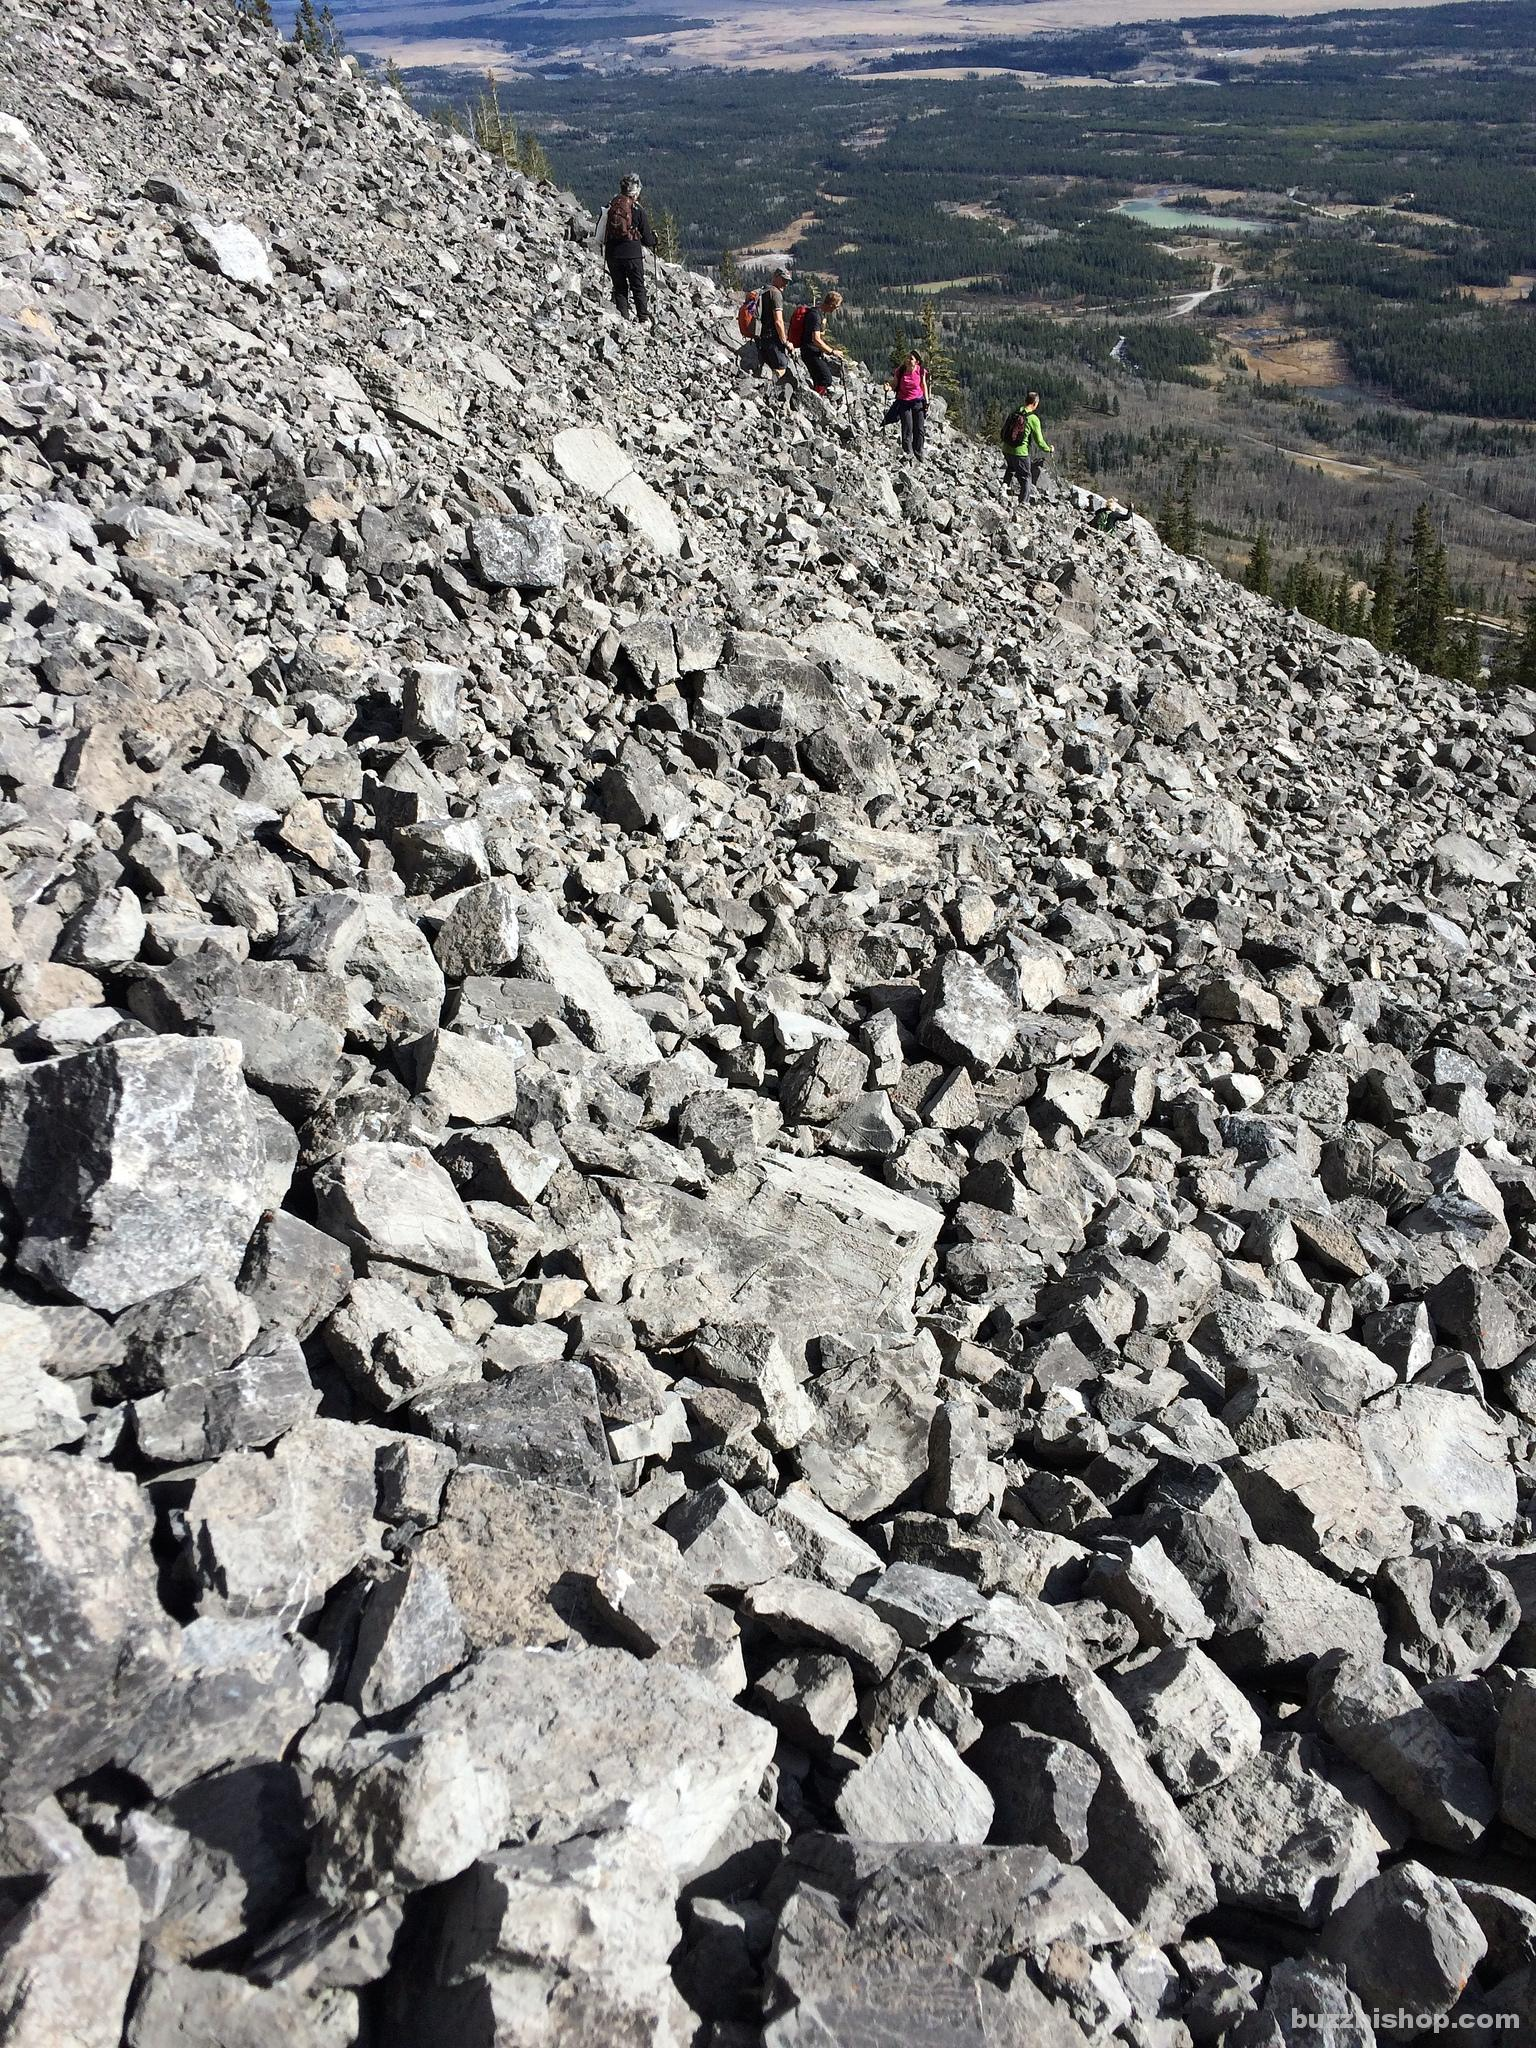 Trying to climb the scree